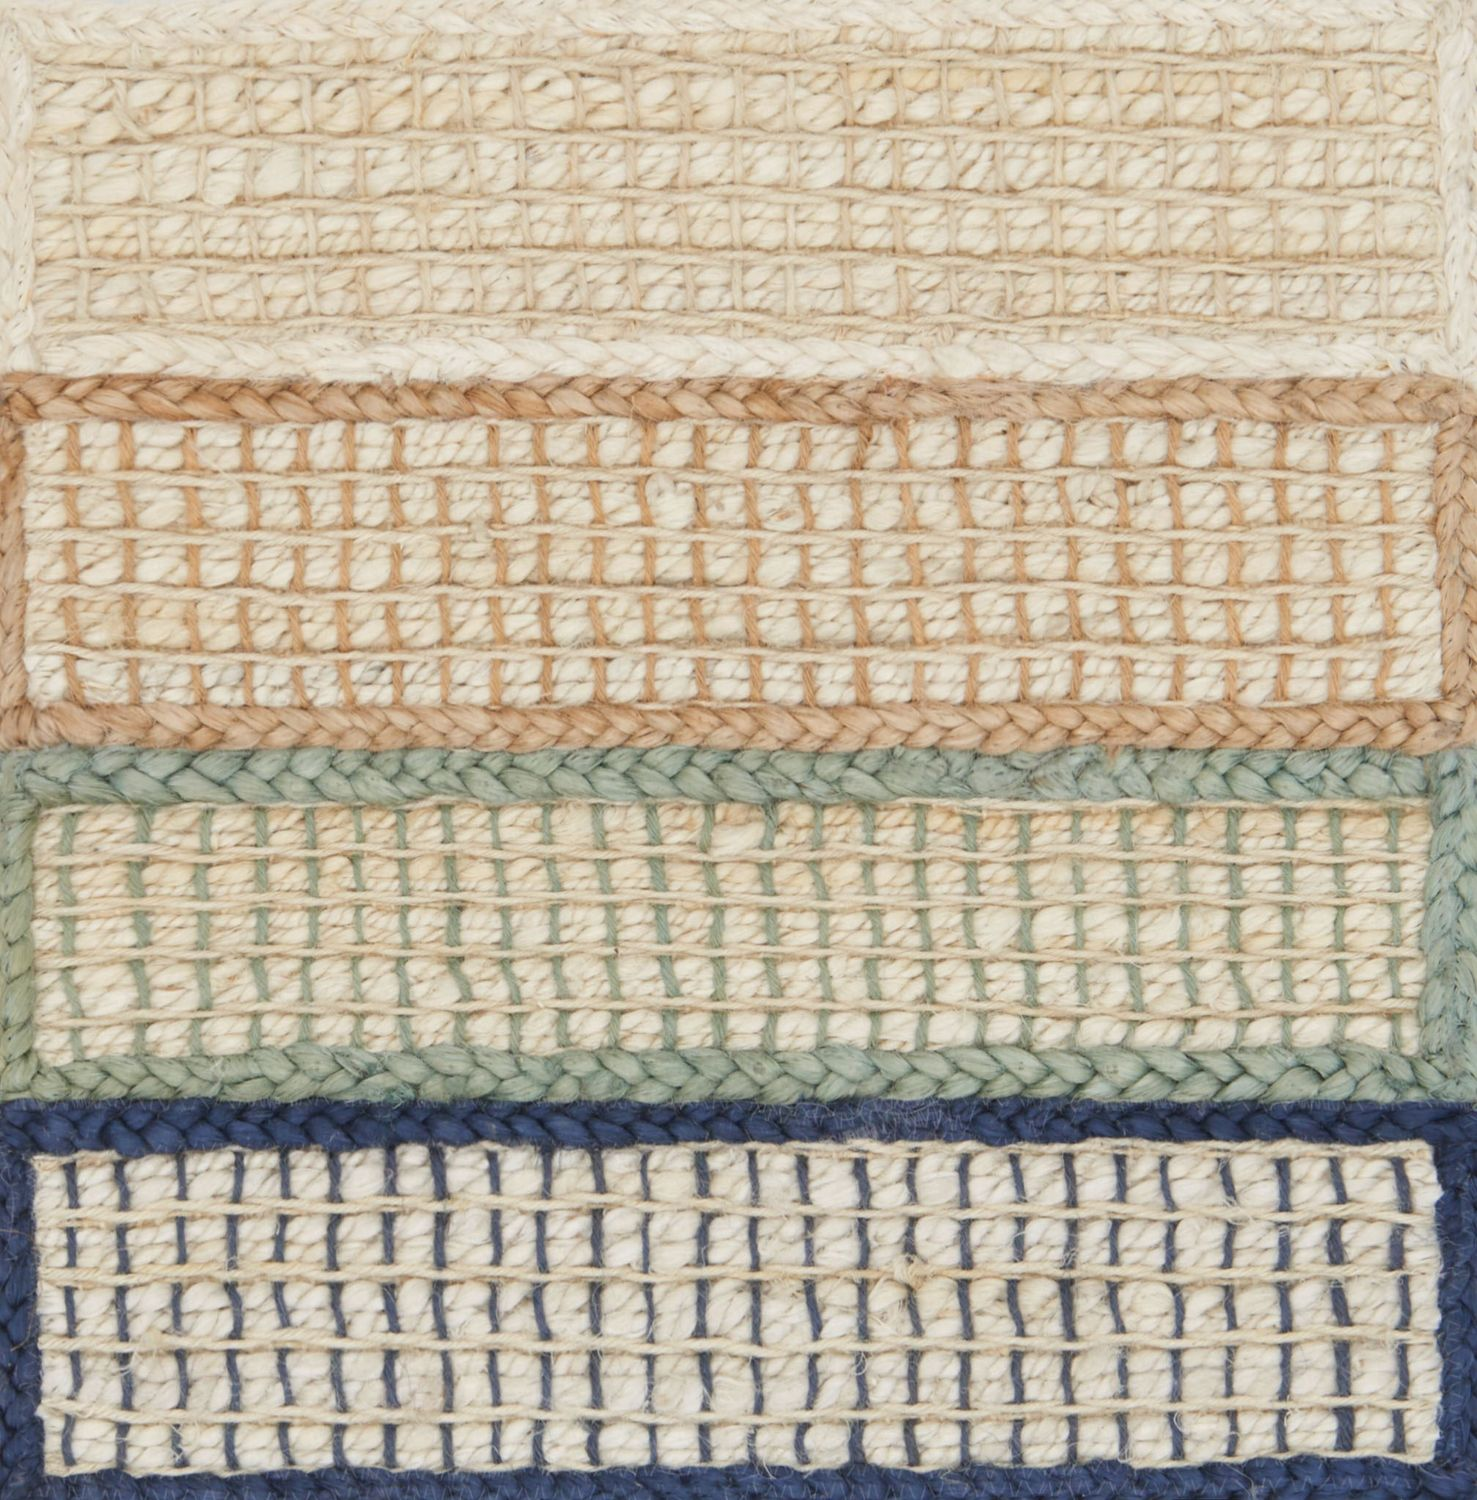 Large Rugs Sydney Loloi Sydney Dy 01 Color Block 01 Natural Fiber Rug From The